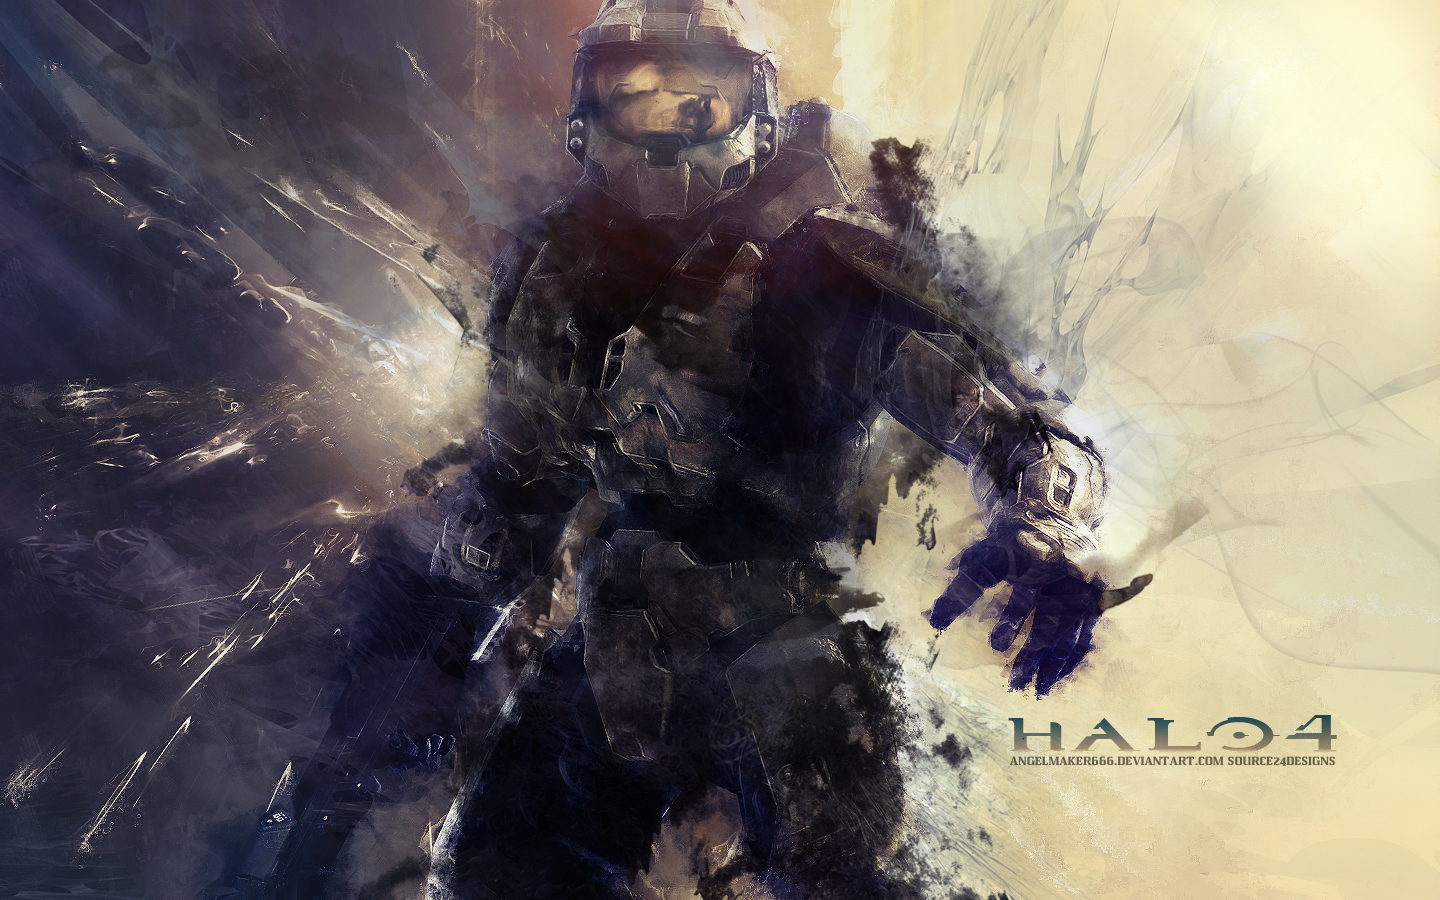 Halo-4-computer-wallpaper.jpg